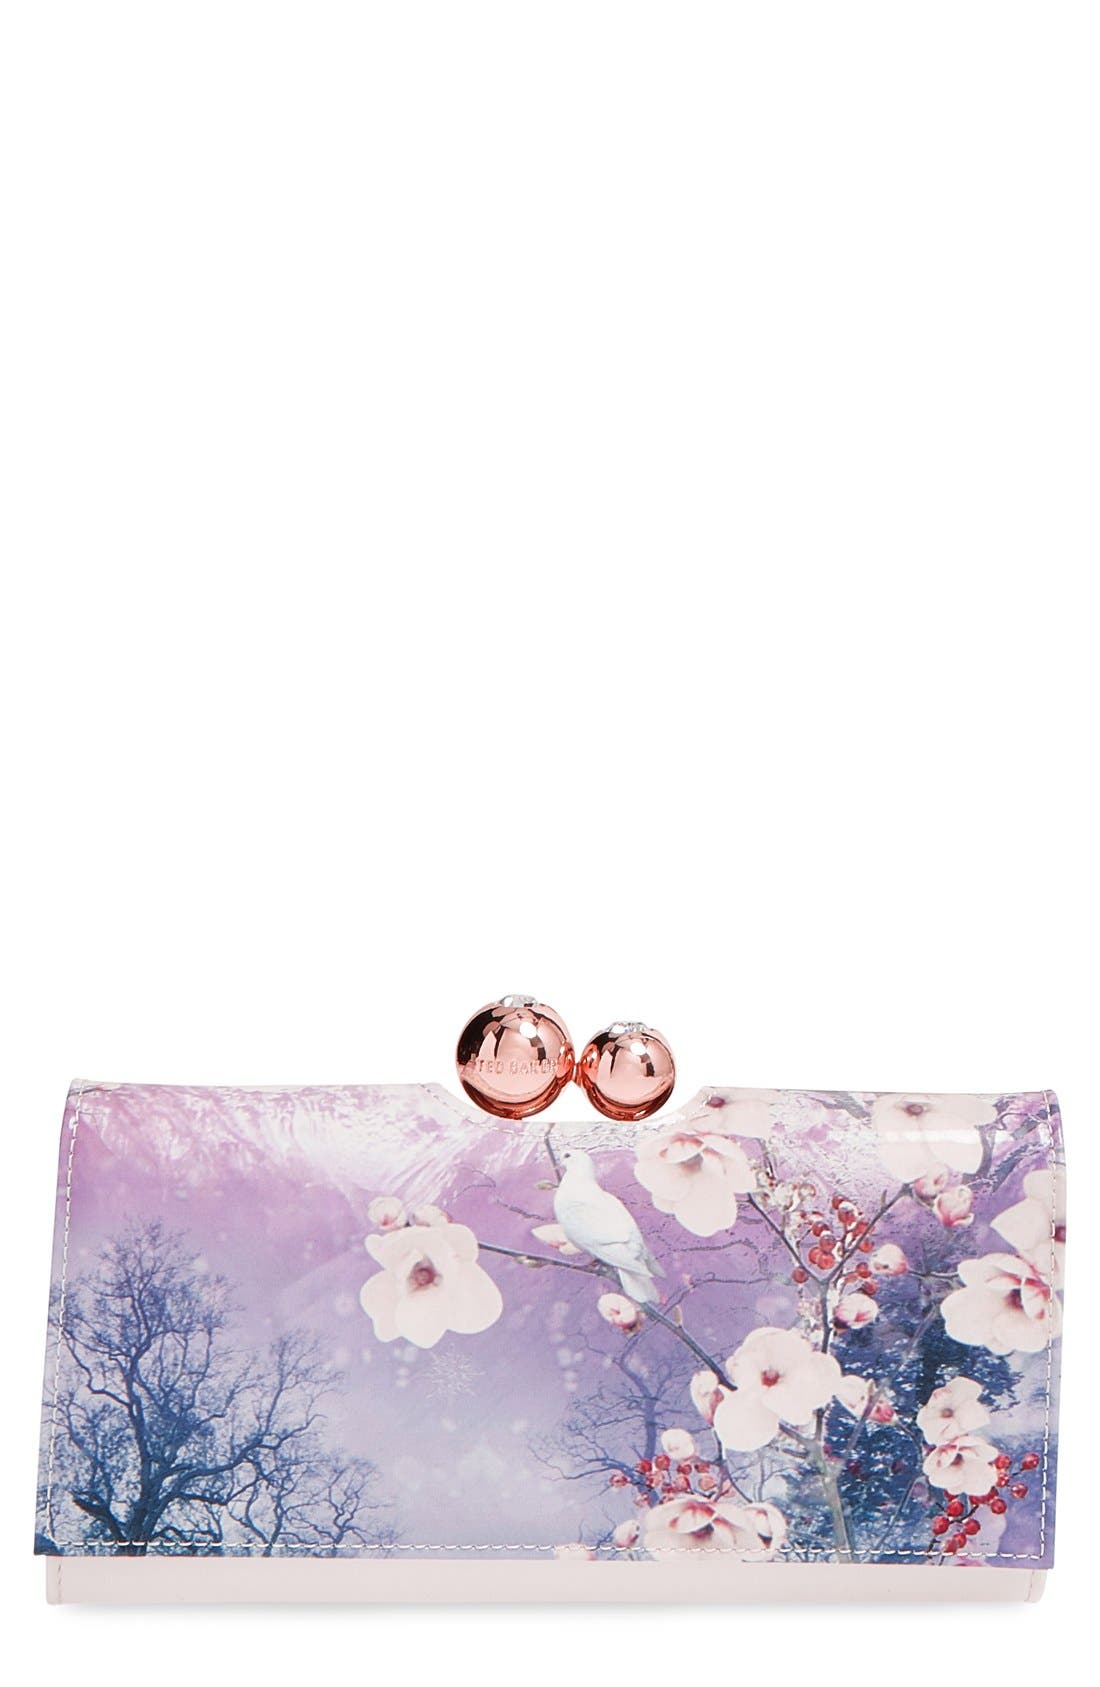 Alternate Image 1 Selected - Ted Baker London 'Misty Mountains' Matinee Wallet